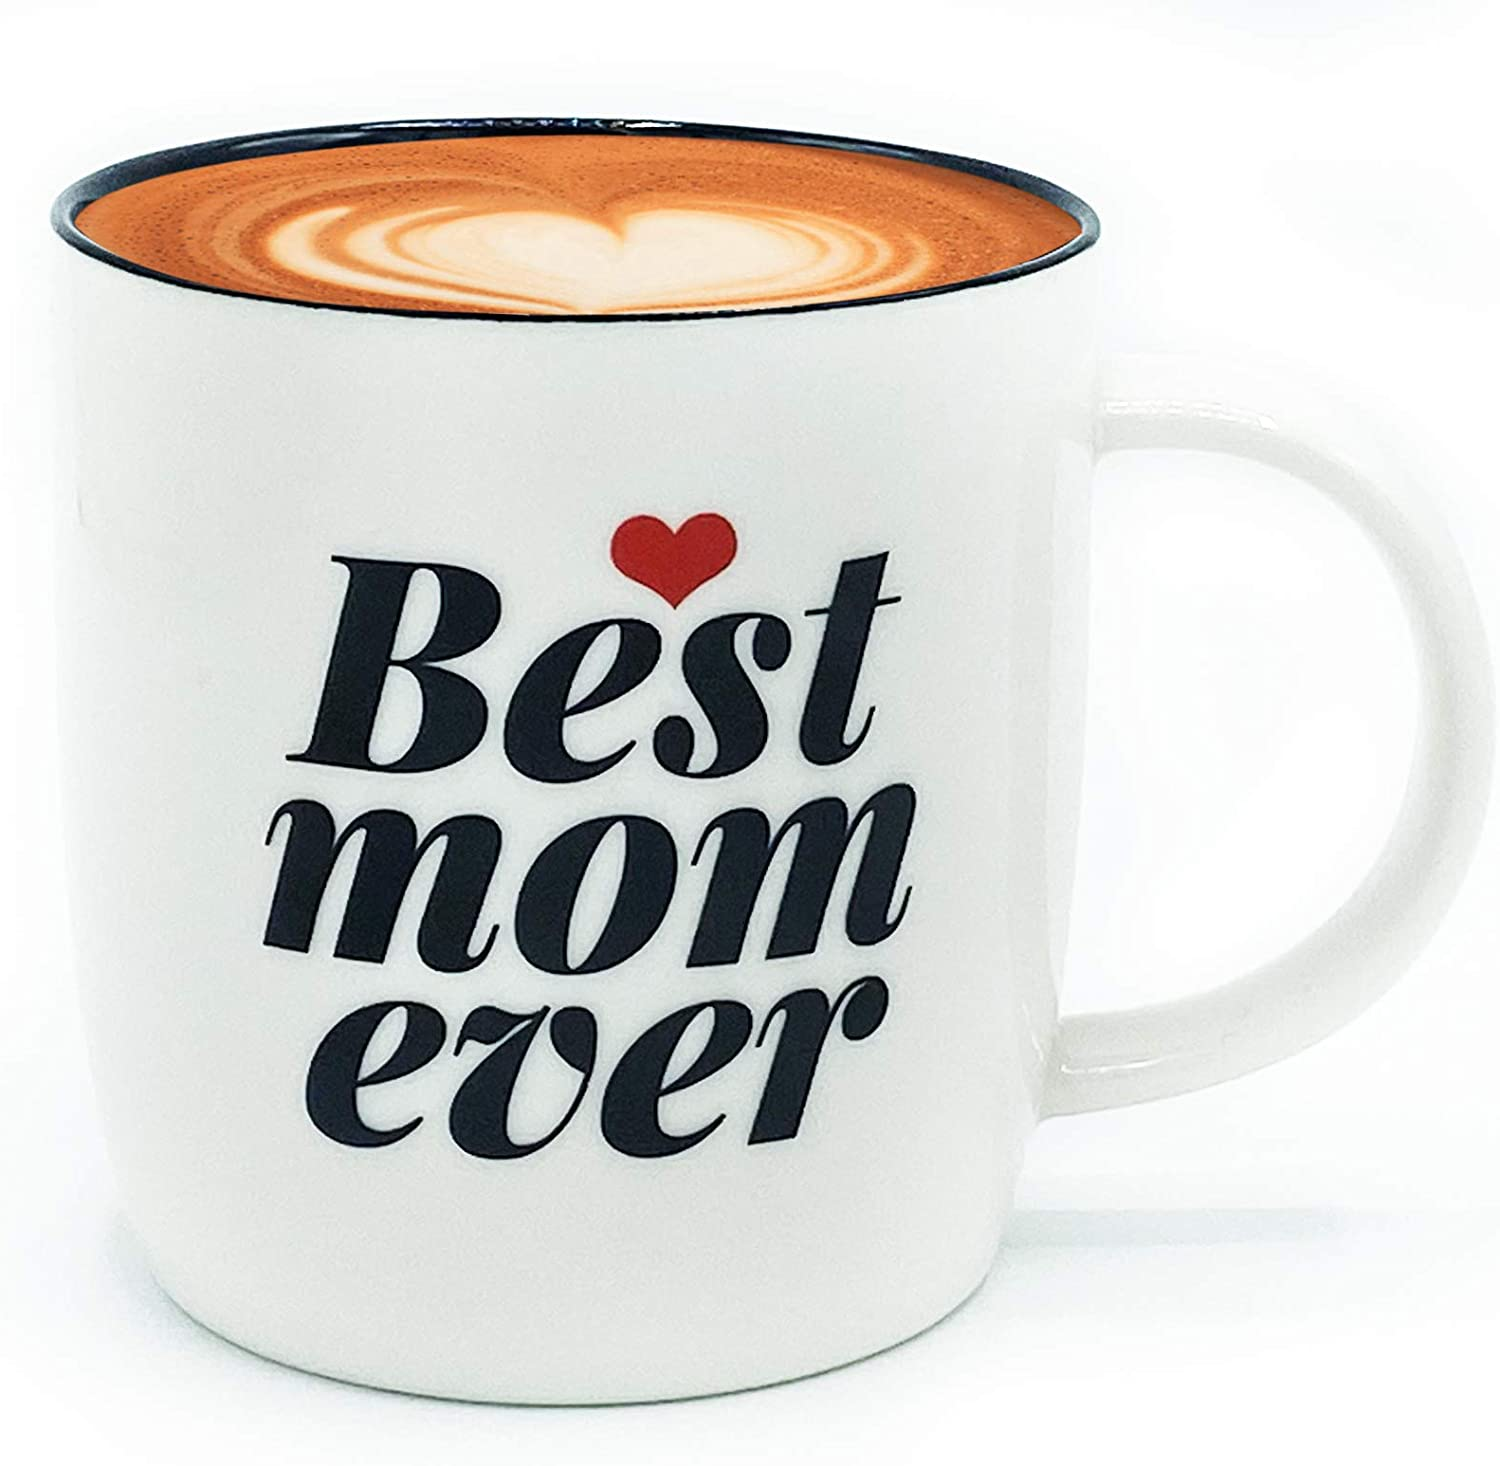 Amazon Com Triple Gifffted Worlds Best Mom Ever Coffee Mug Great Birthday Gifts Ideas For Mom From Daughter And Son Greatest Gift Moms Presents Anniversary Cups Christmas Mothers Day Mugs Valentines Cup Kitchen